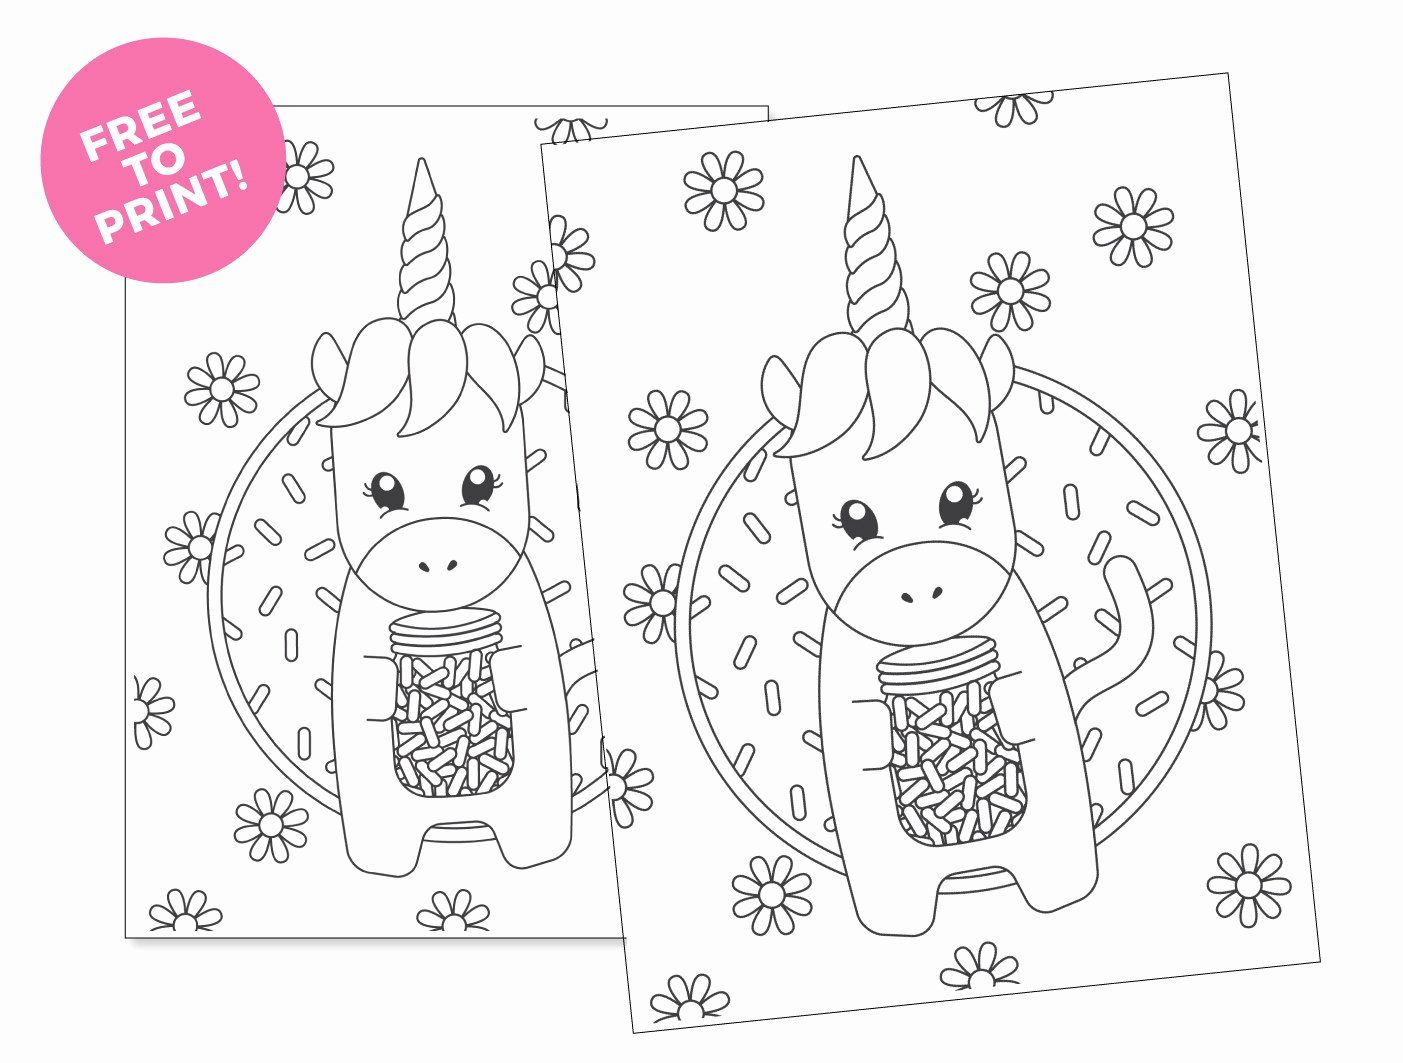 Spring Flowers Coloring Pages Printable in 2020 Unicorn